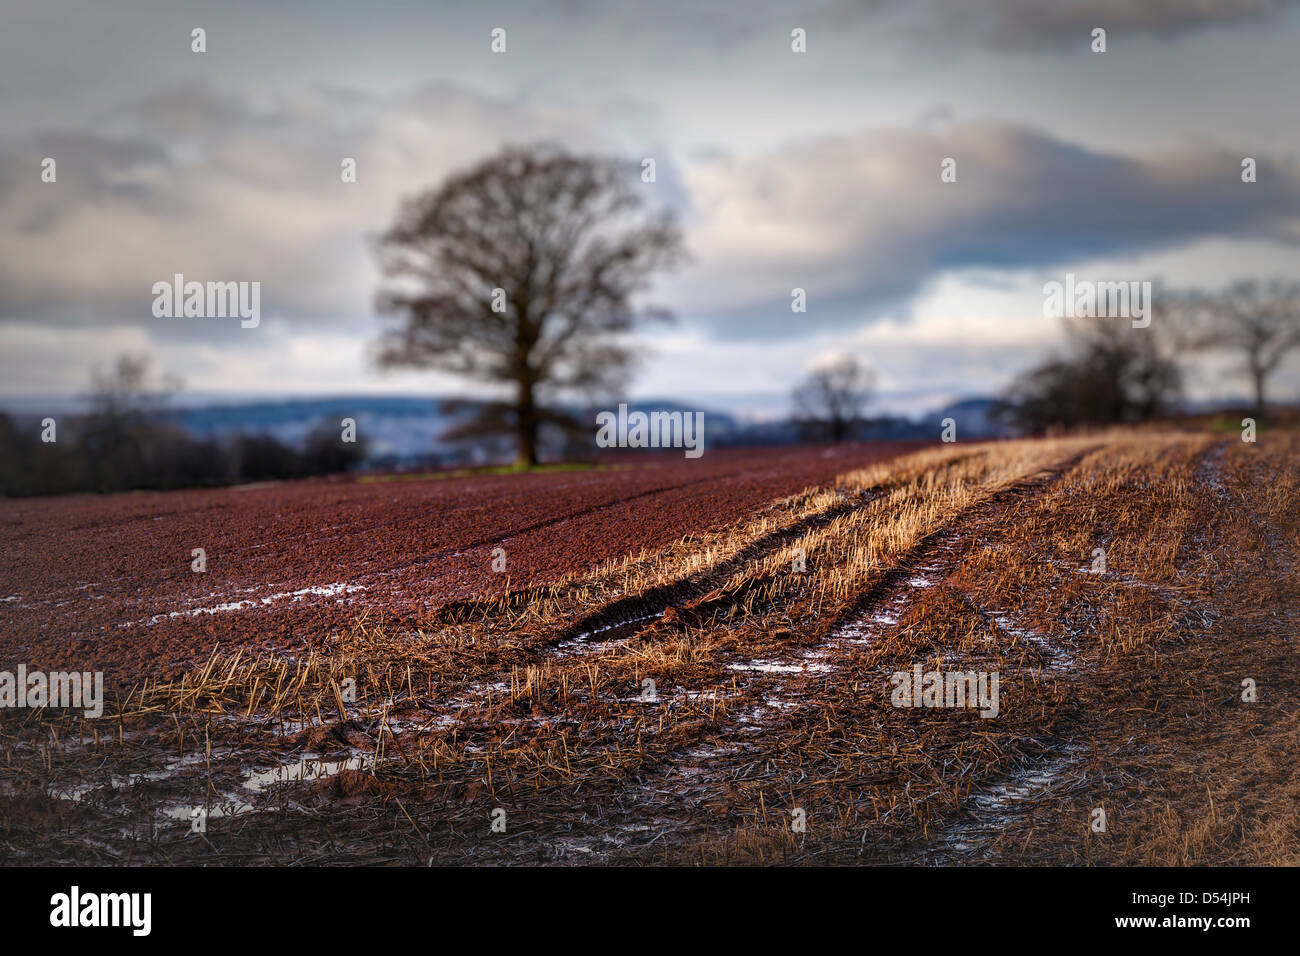 Corn stubble in waterlogged field, Herefordshire, England, UK Stock Photo